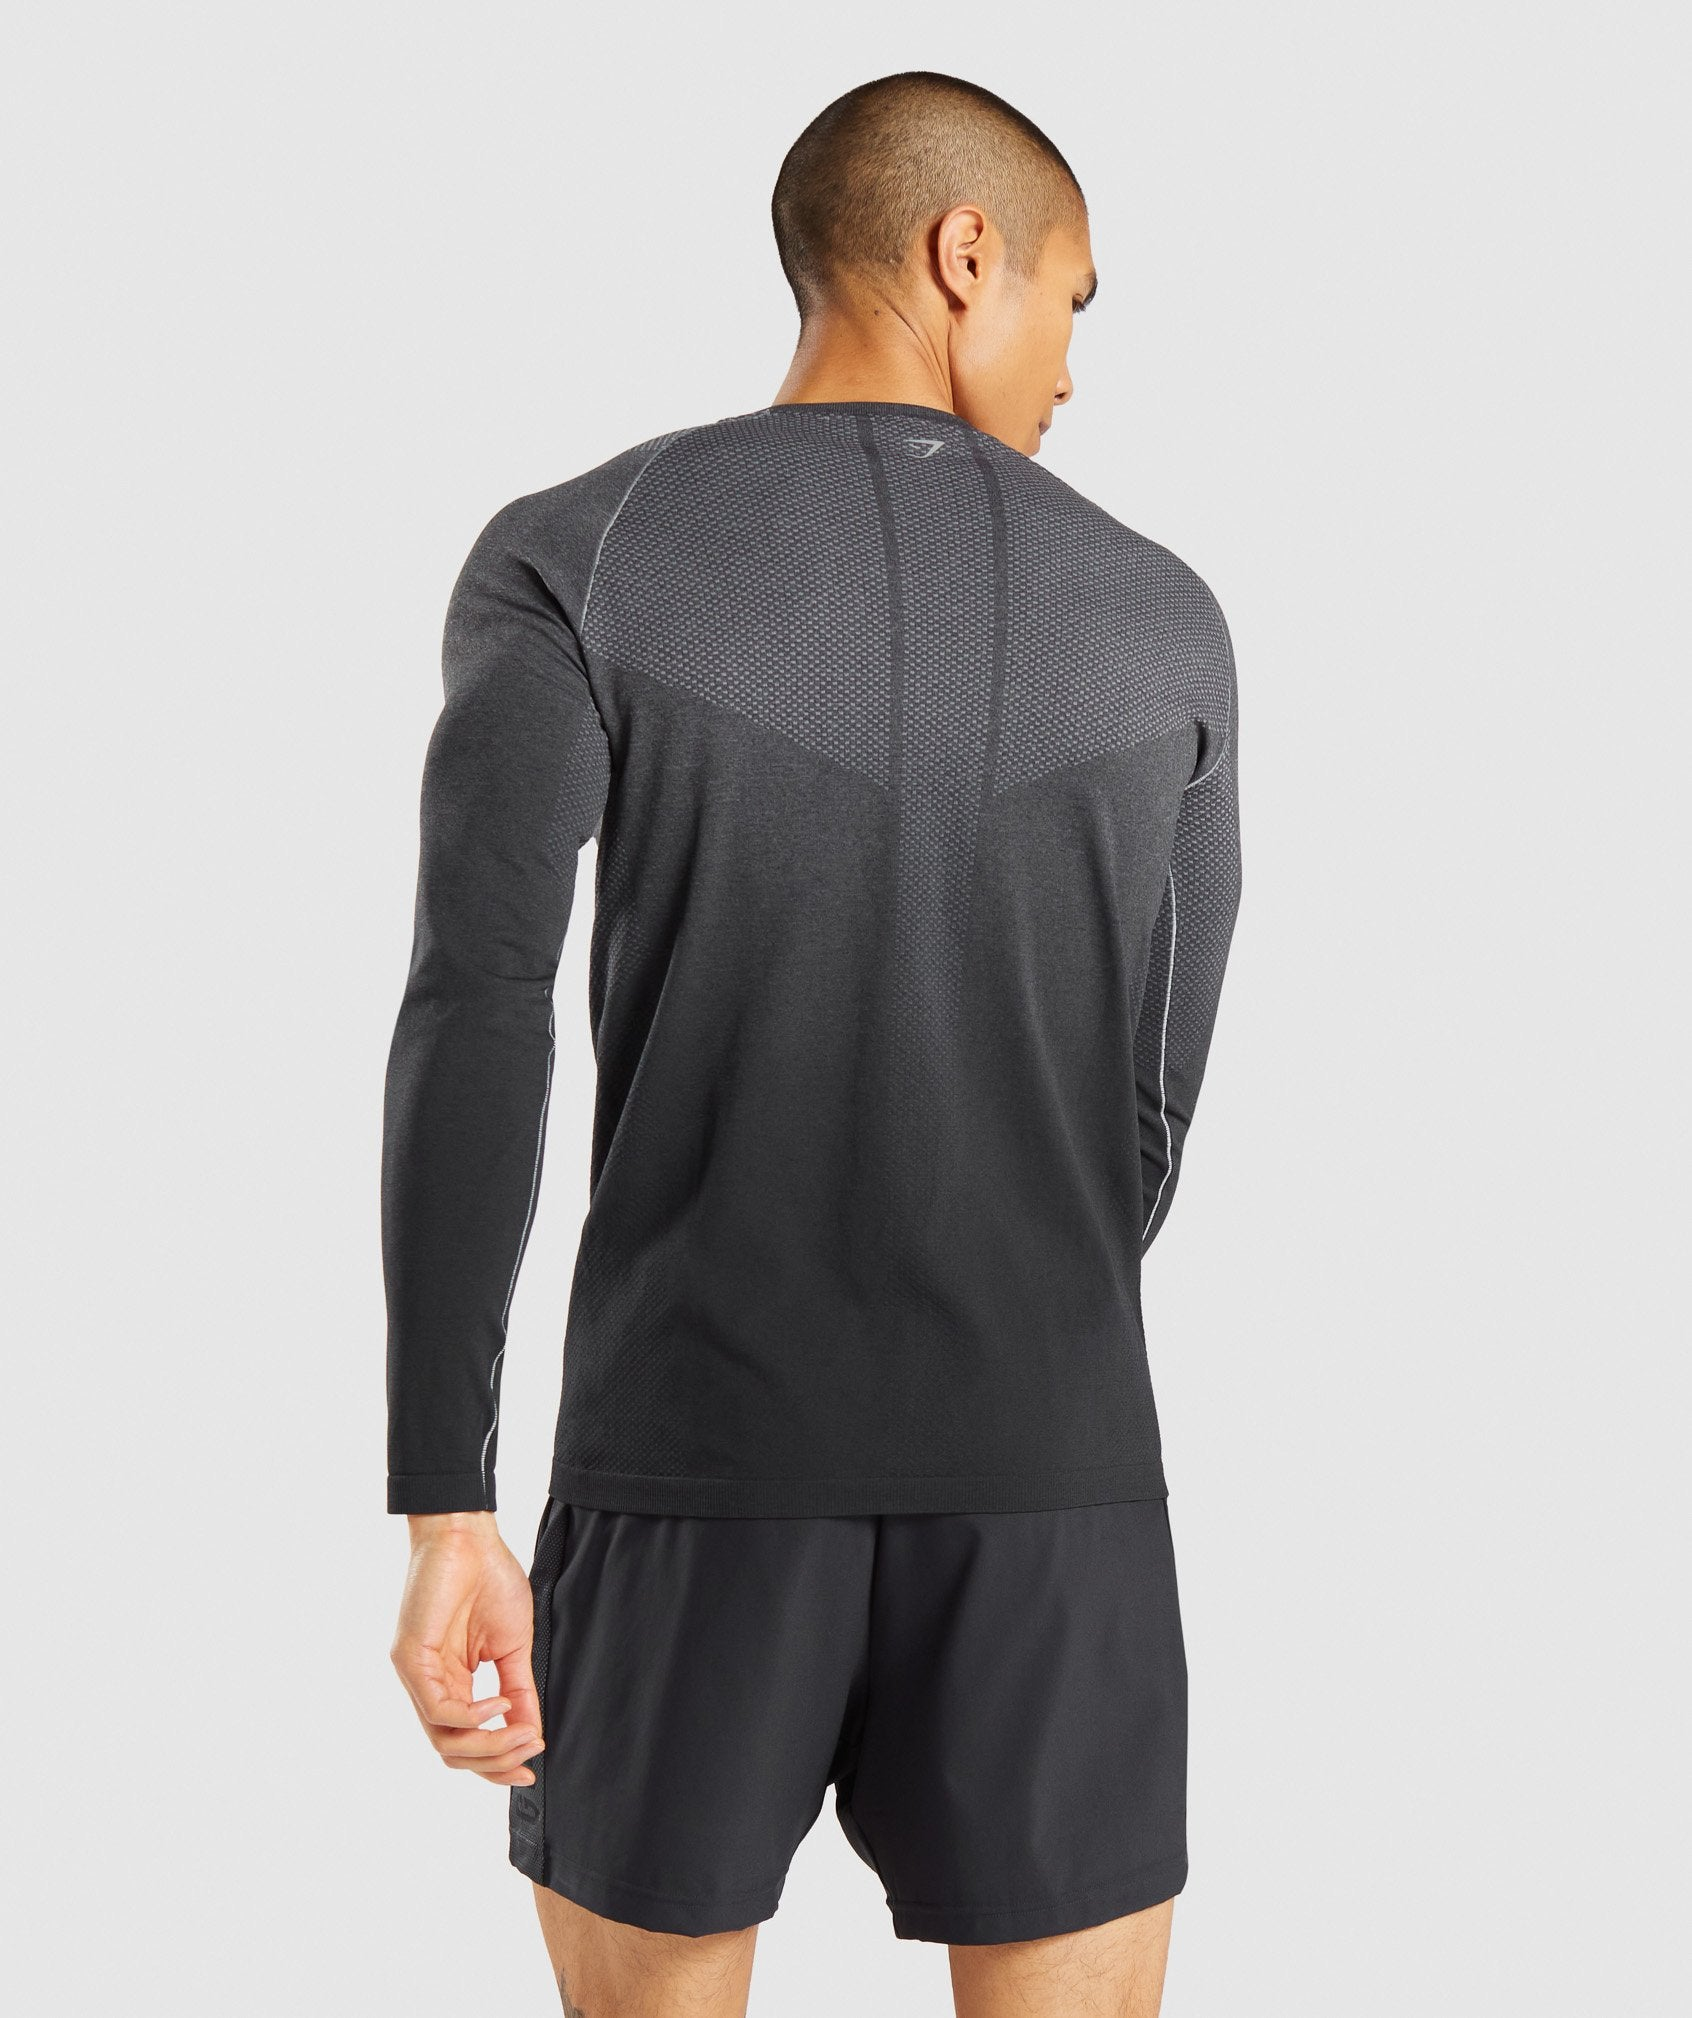 Classier: Buy Gymshark Vital Ombre Seamless Long Sleeve T-Shirt - Smokey Grey Marl/Black - Gymshark